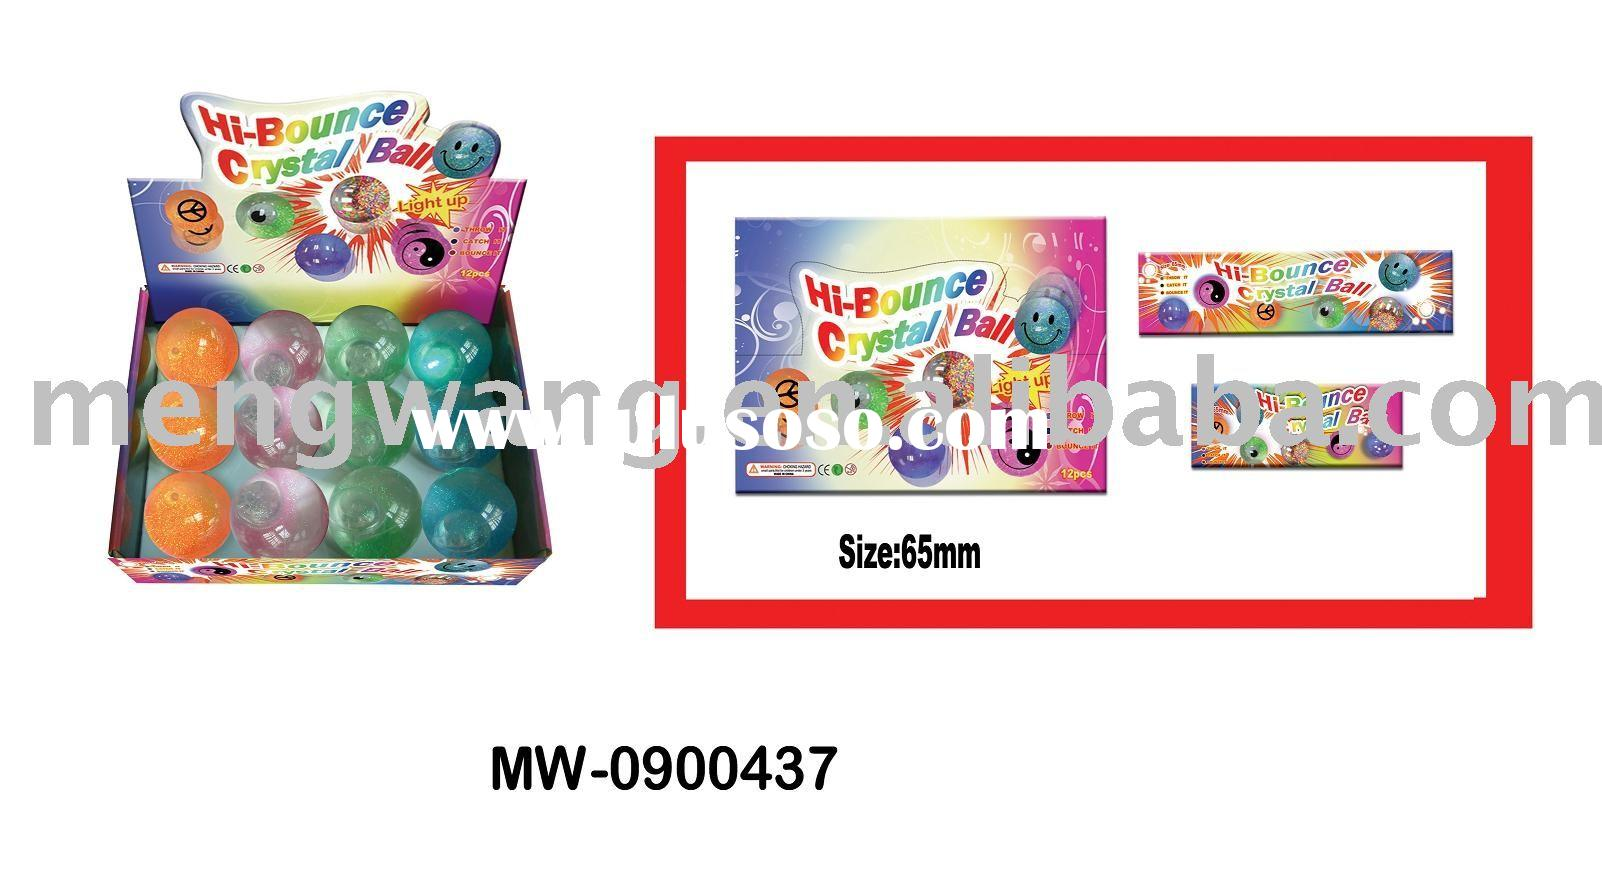 Light up bounce ball/Crystal bouncing ball/Glitter bouncing ball/Water ball/New-hot items